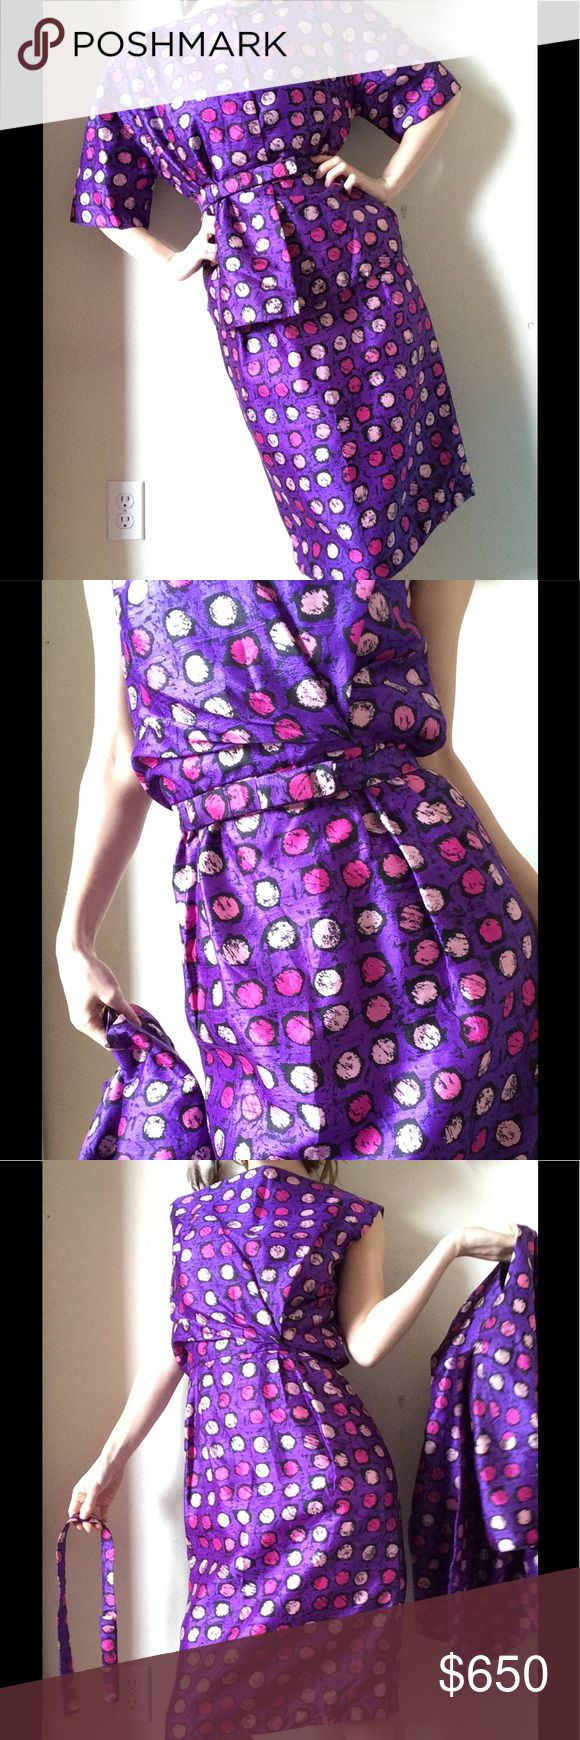 1950 Miss Egypt Haute Couture Le Cairo 3pc Suit Stunning & Eclectic in Excellent condition. Smoke free home. Silk. Fully lined. Polka dot pink & purple. Long metal zipper up the back with covering hook & eyes. Inner belt hooks. Duster blazer. Hand sewn. Measurements laying flat: soon! Formal cocktail 🍹 Gown Vintage Dresses Mini